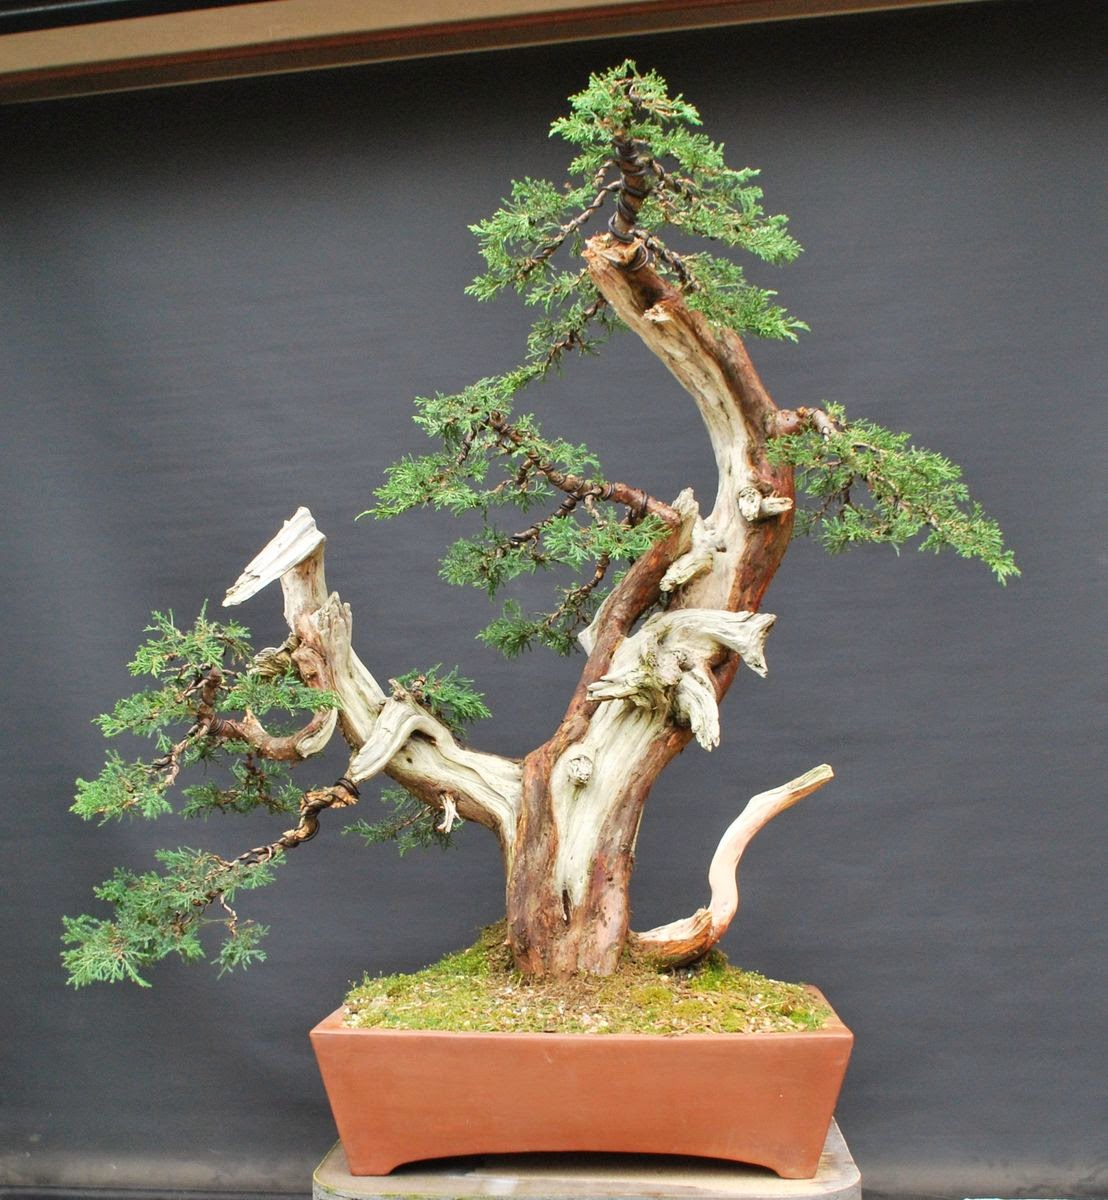 Leaf Brothers Grafted Juniper Snake Charmer Wiring Bonsai Tree So The Last Series Of Photos Shows Current State After Complete And Treating Dead Wood Live Veins